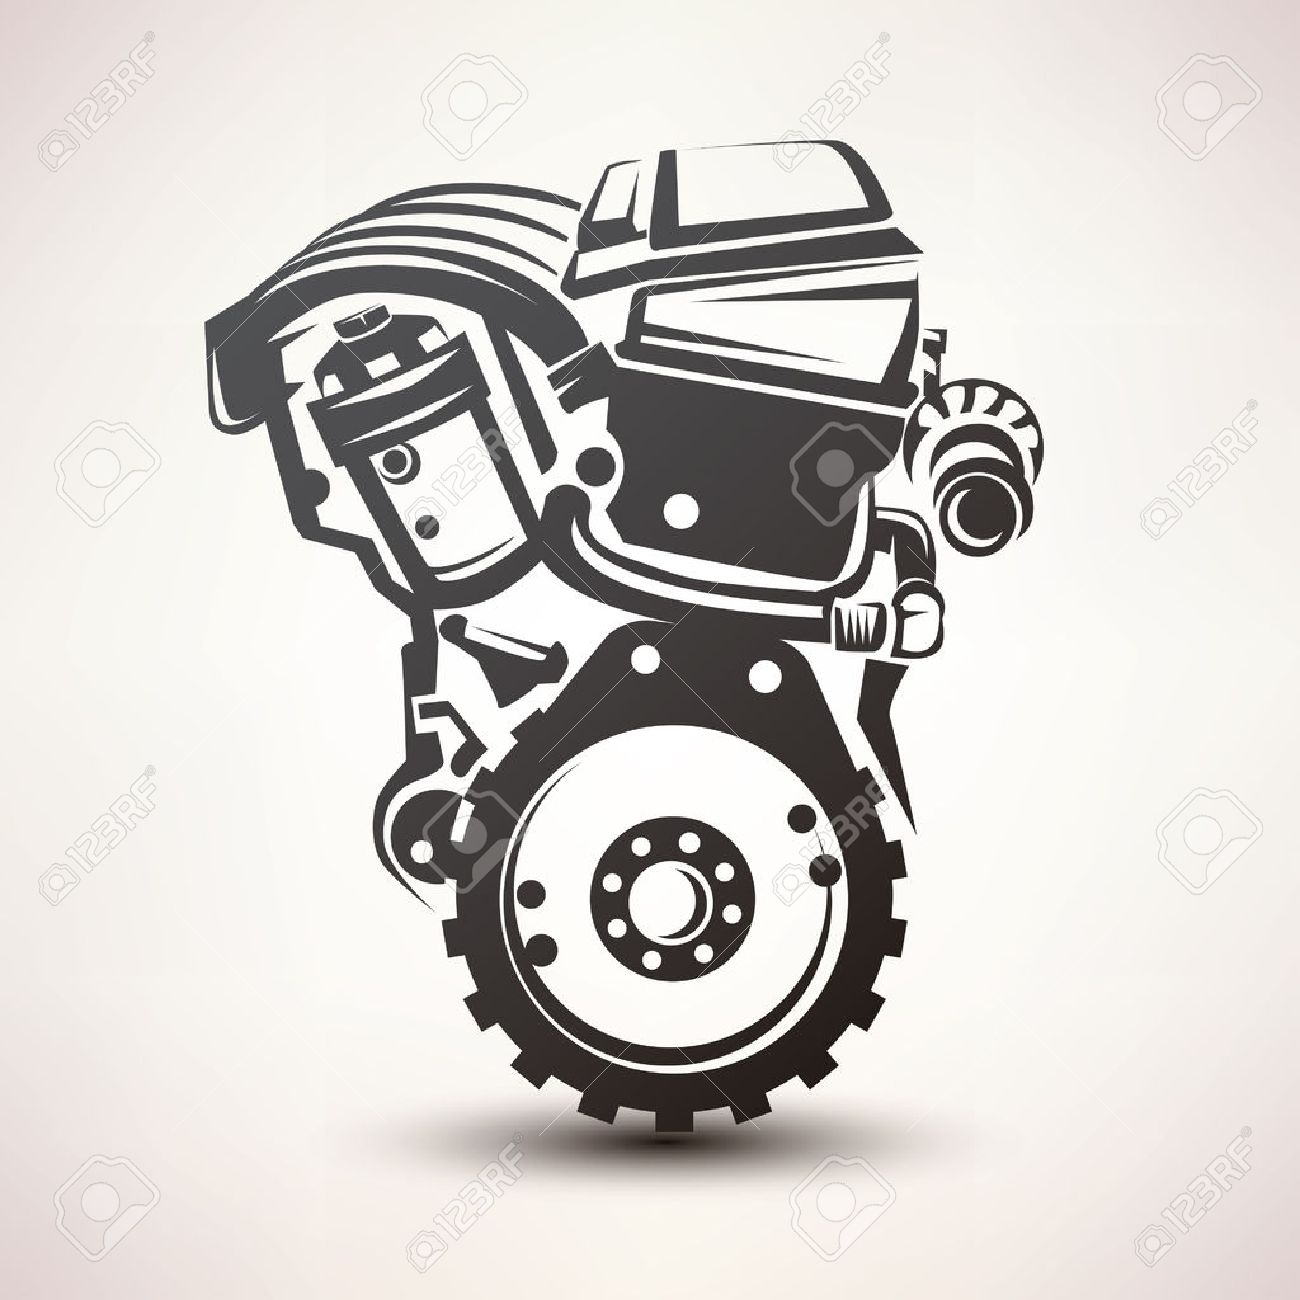 engine car symbol, stylized vector silhouette icon - 45333830